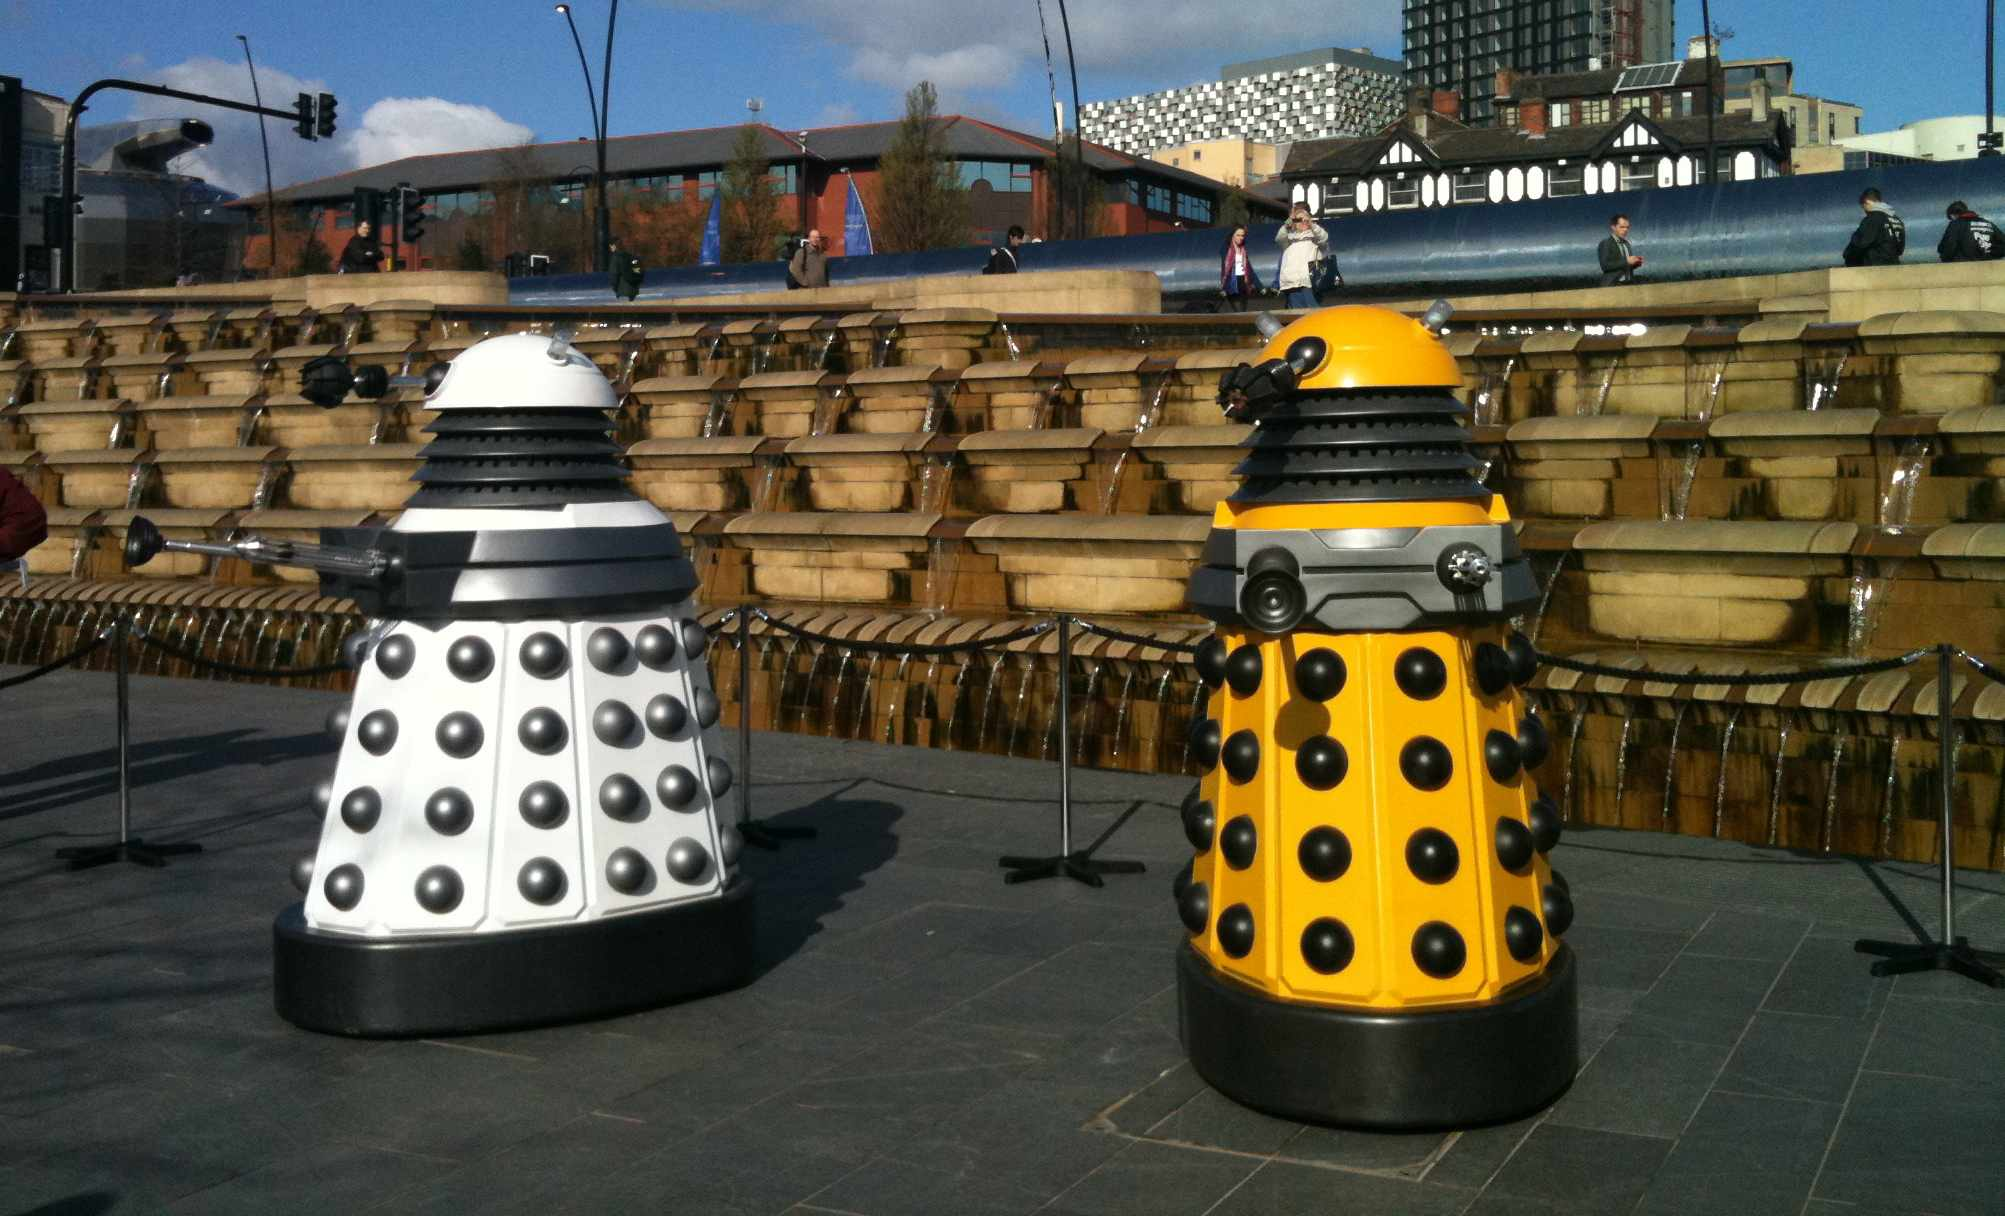 Two Daleks, one white and one yellow, in a public square